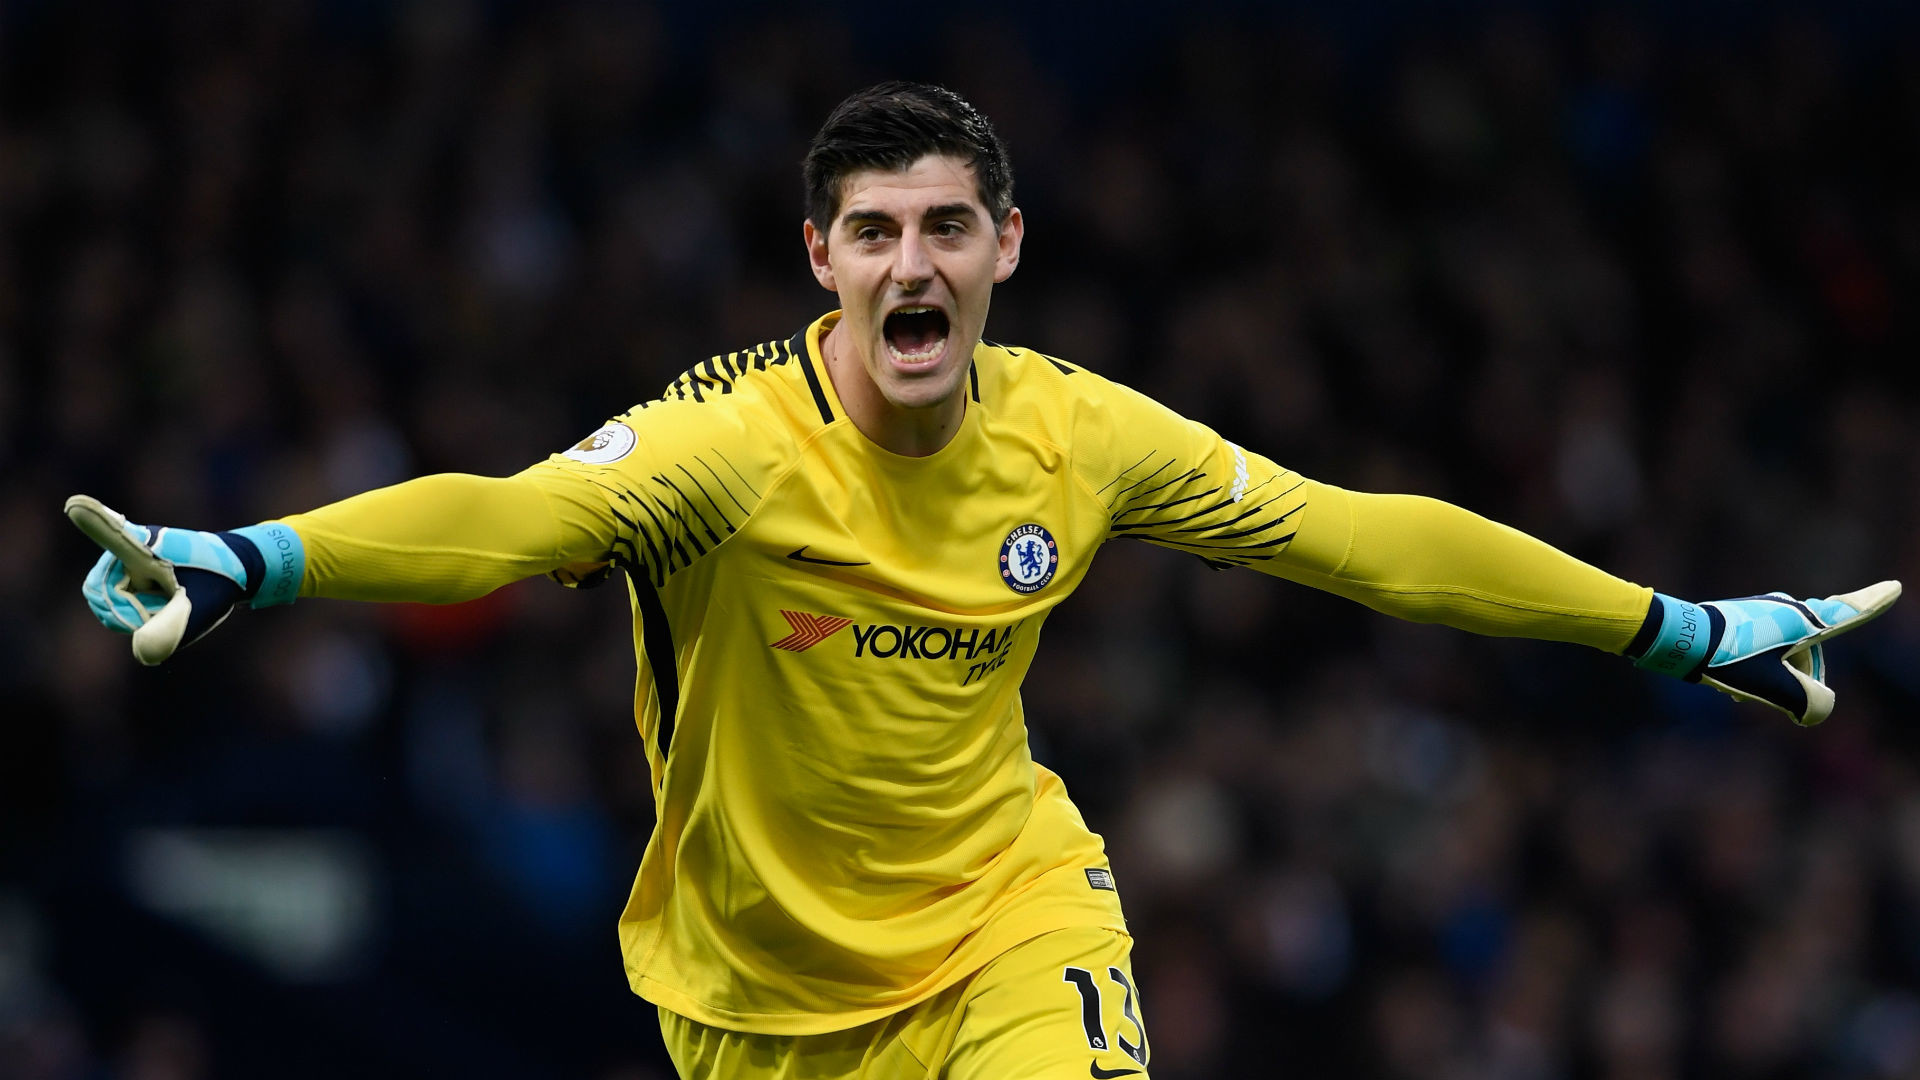 Thibaut Courtois Wallpapers (92+ images)